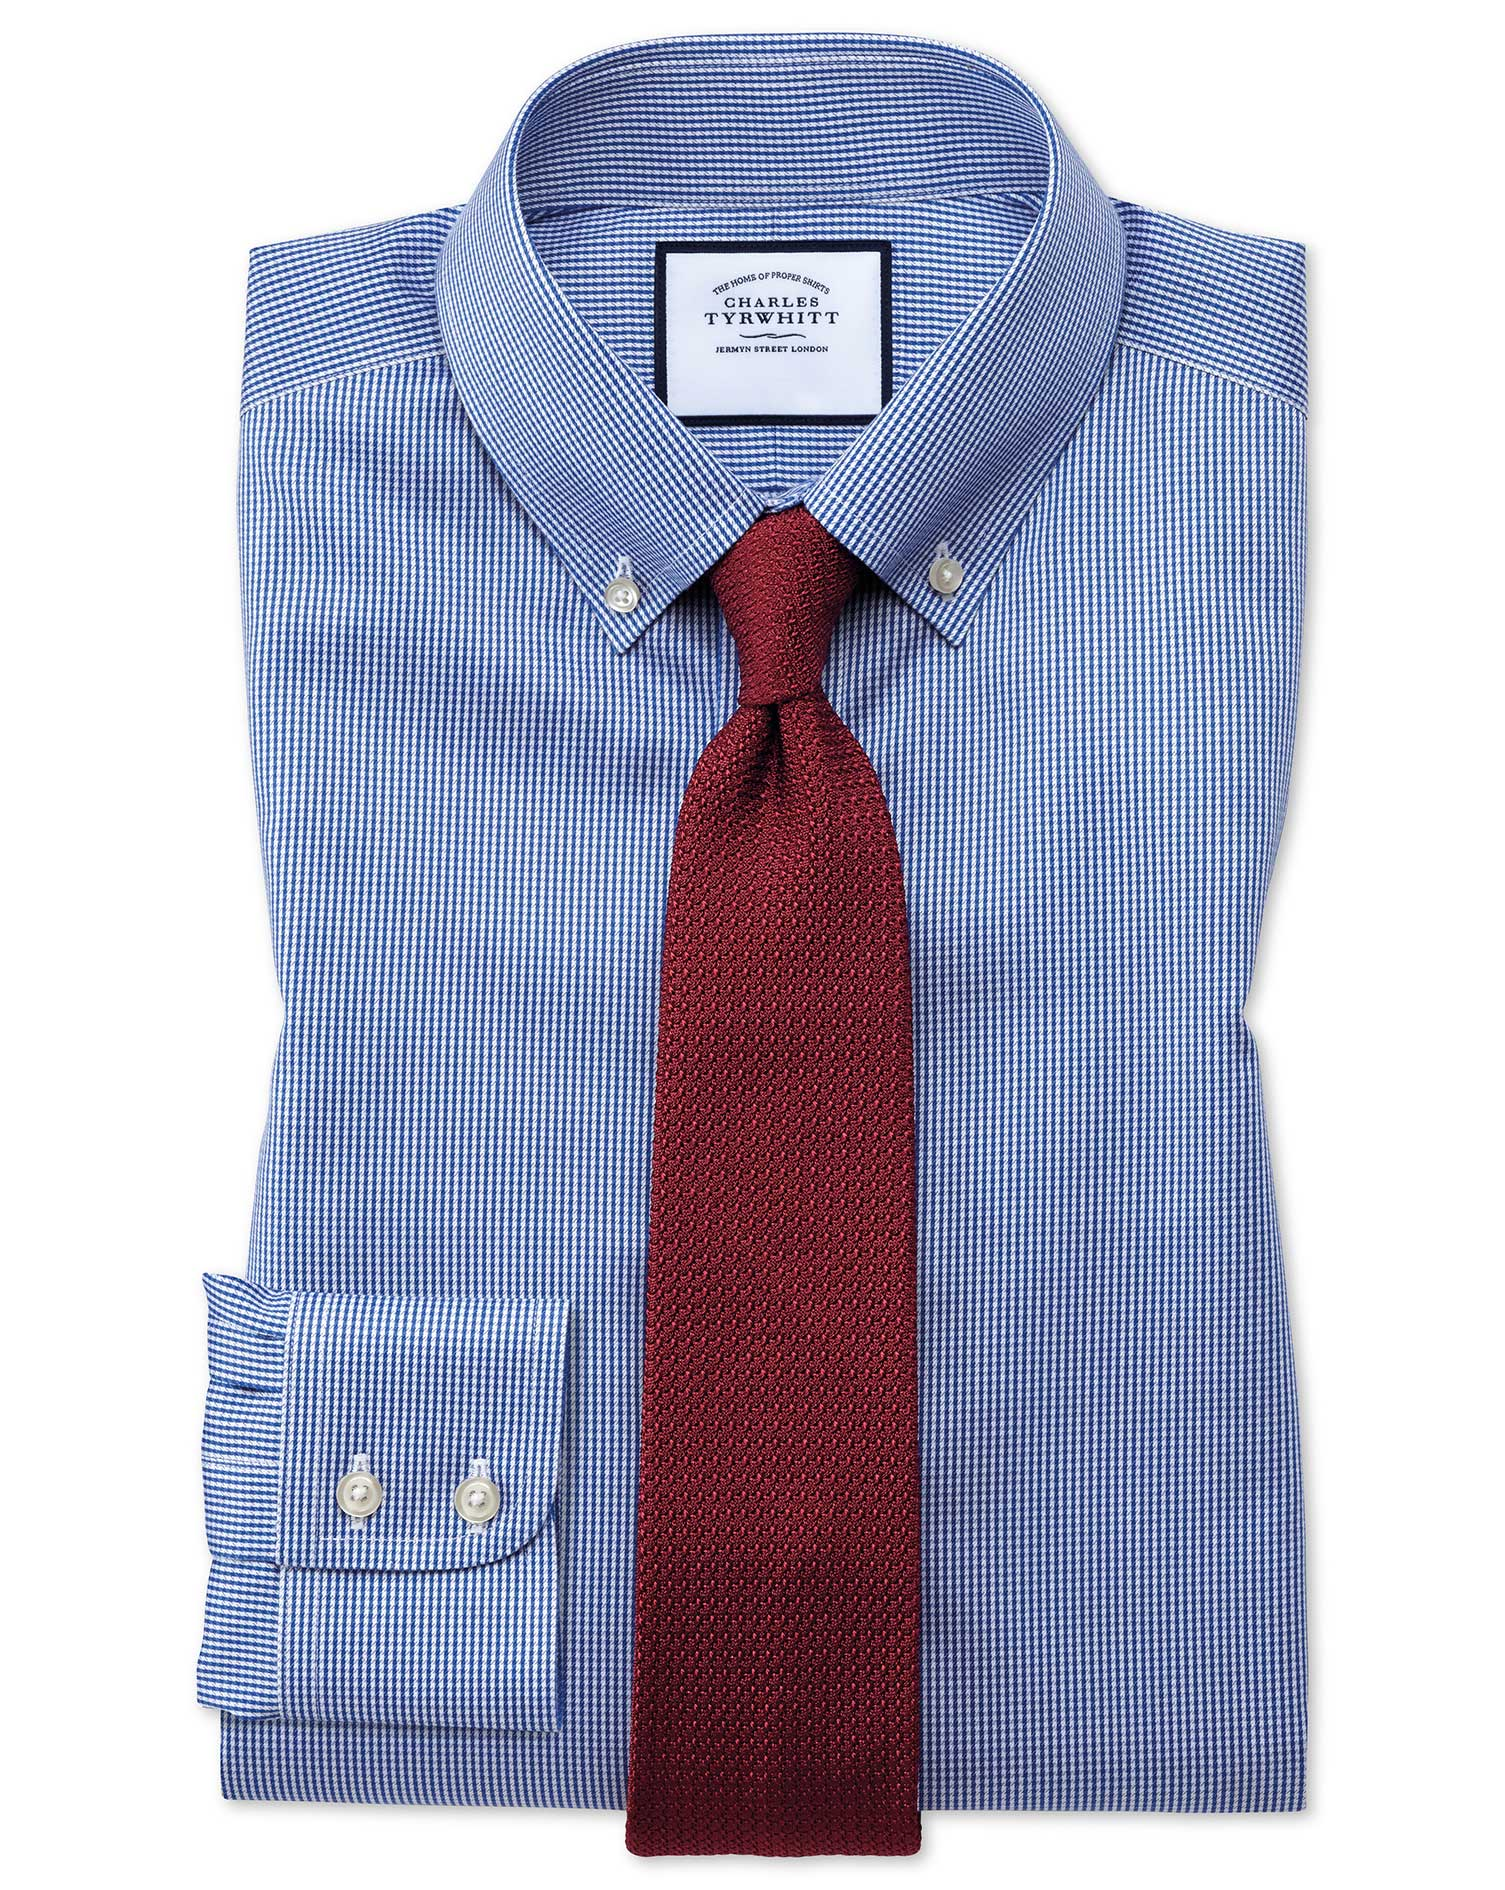 Classic Fit Button-Down Non-Iron Twill Puppytooth Royal Blue Cotton Formal Shirt Single Cuff Size 18